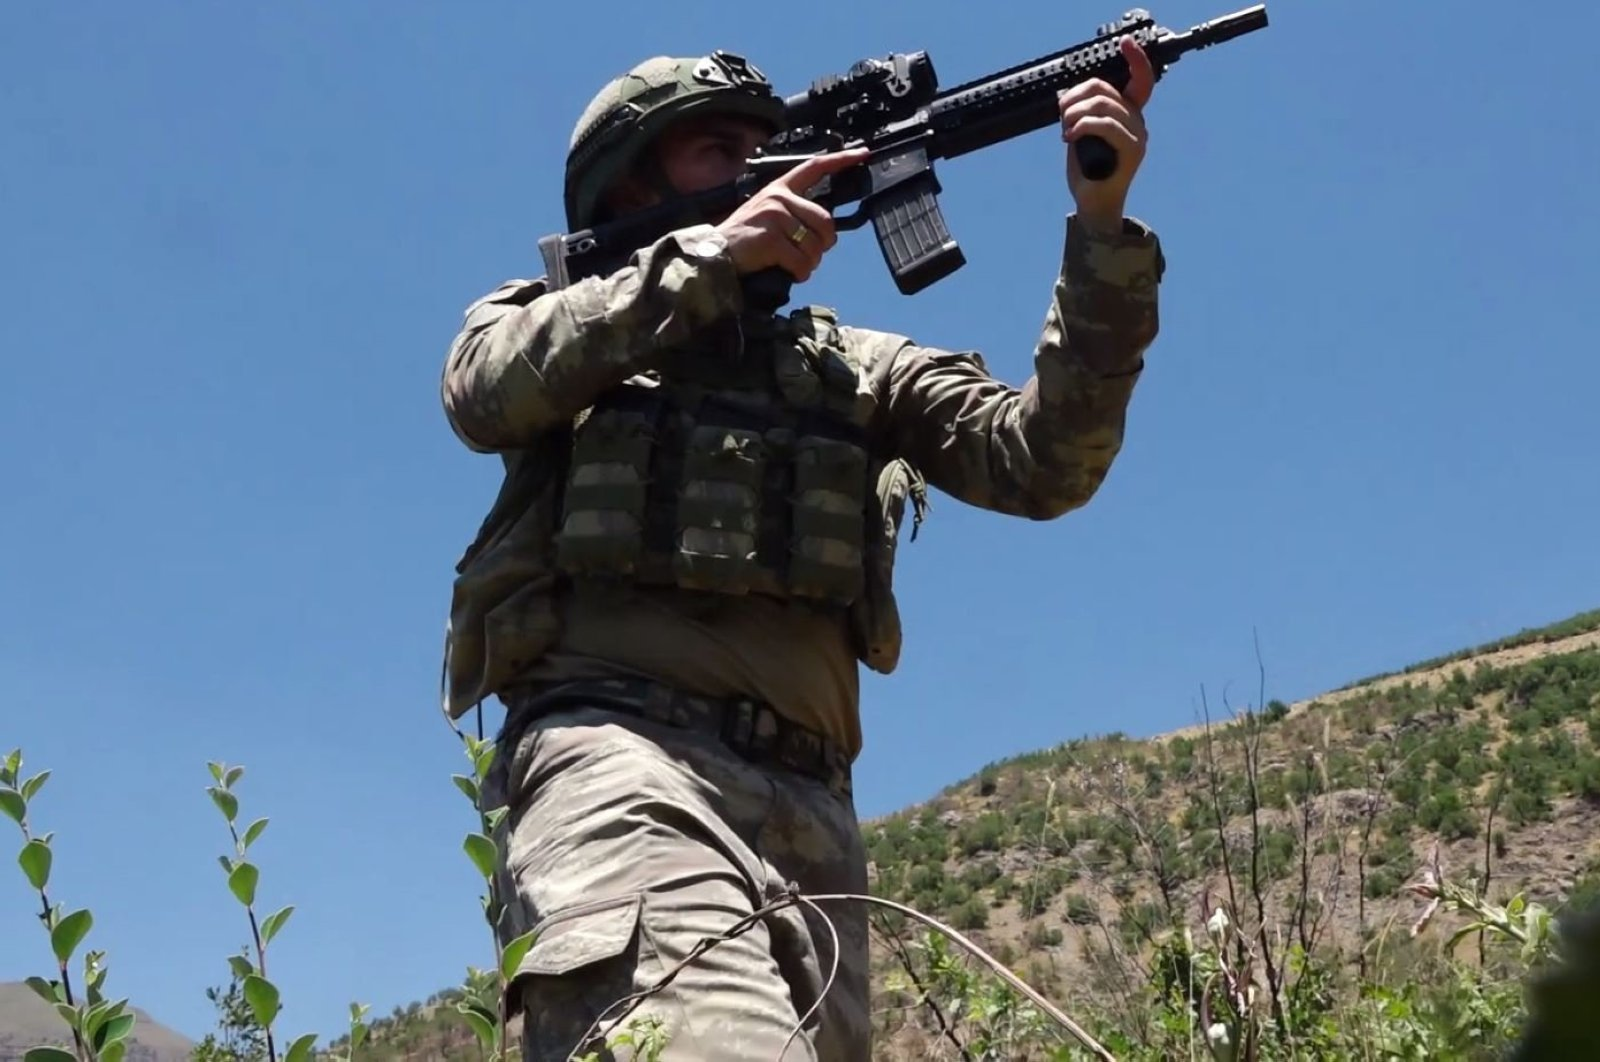 Turkish security forces conduct an operation against the PKK terrorist organization in northern Iraq, Sept. 7, 2020. (DHA Photo)